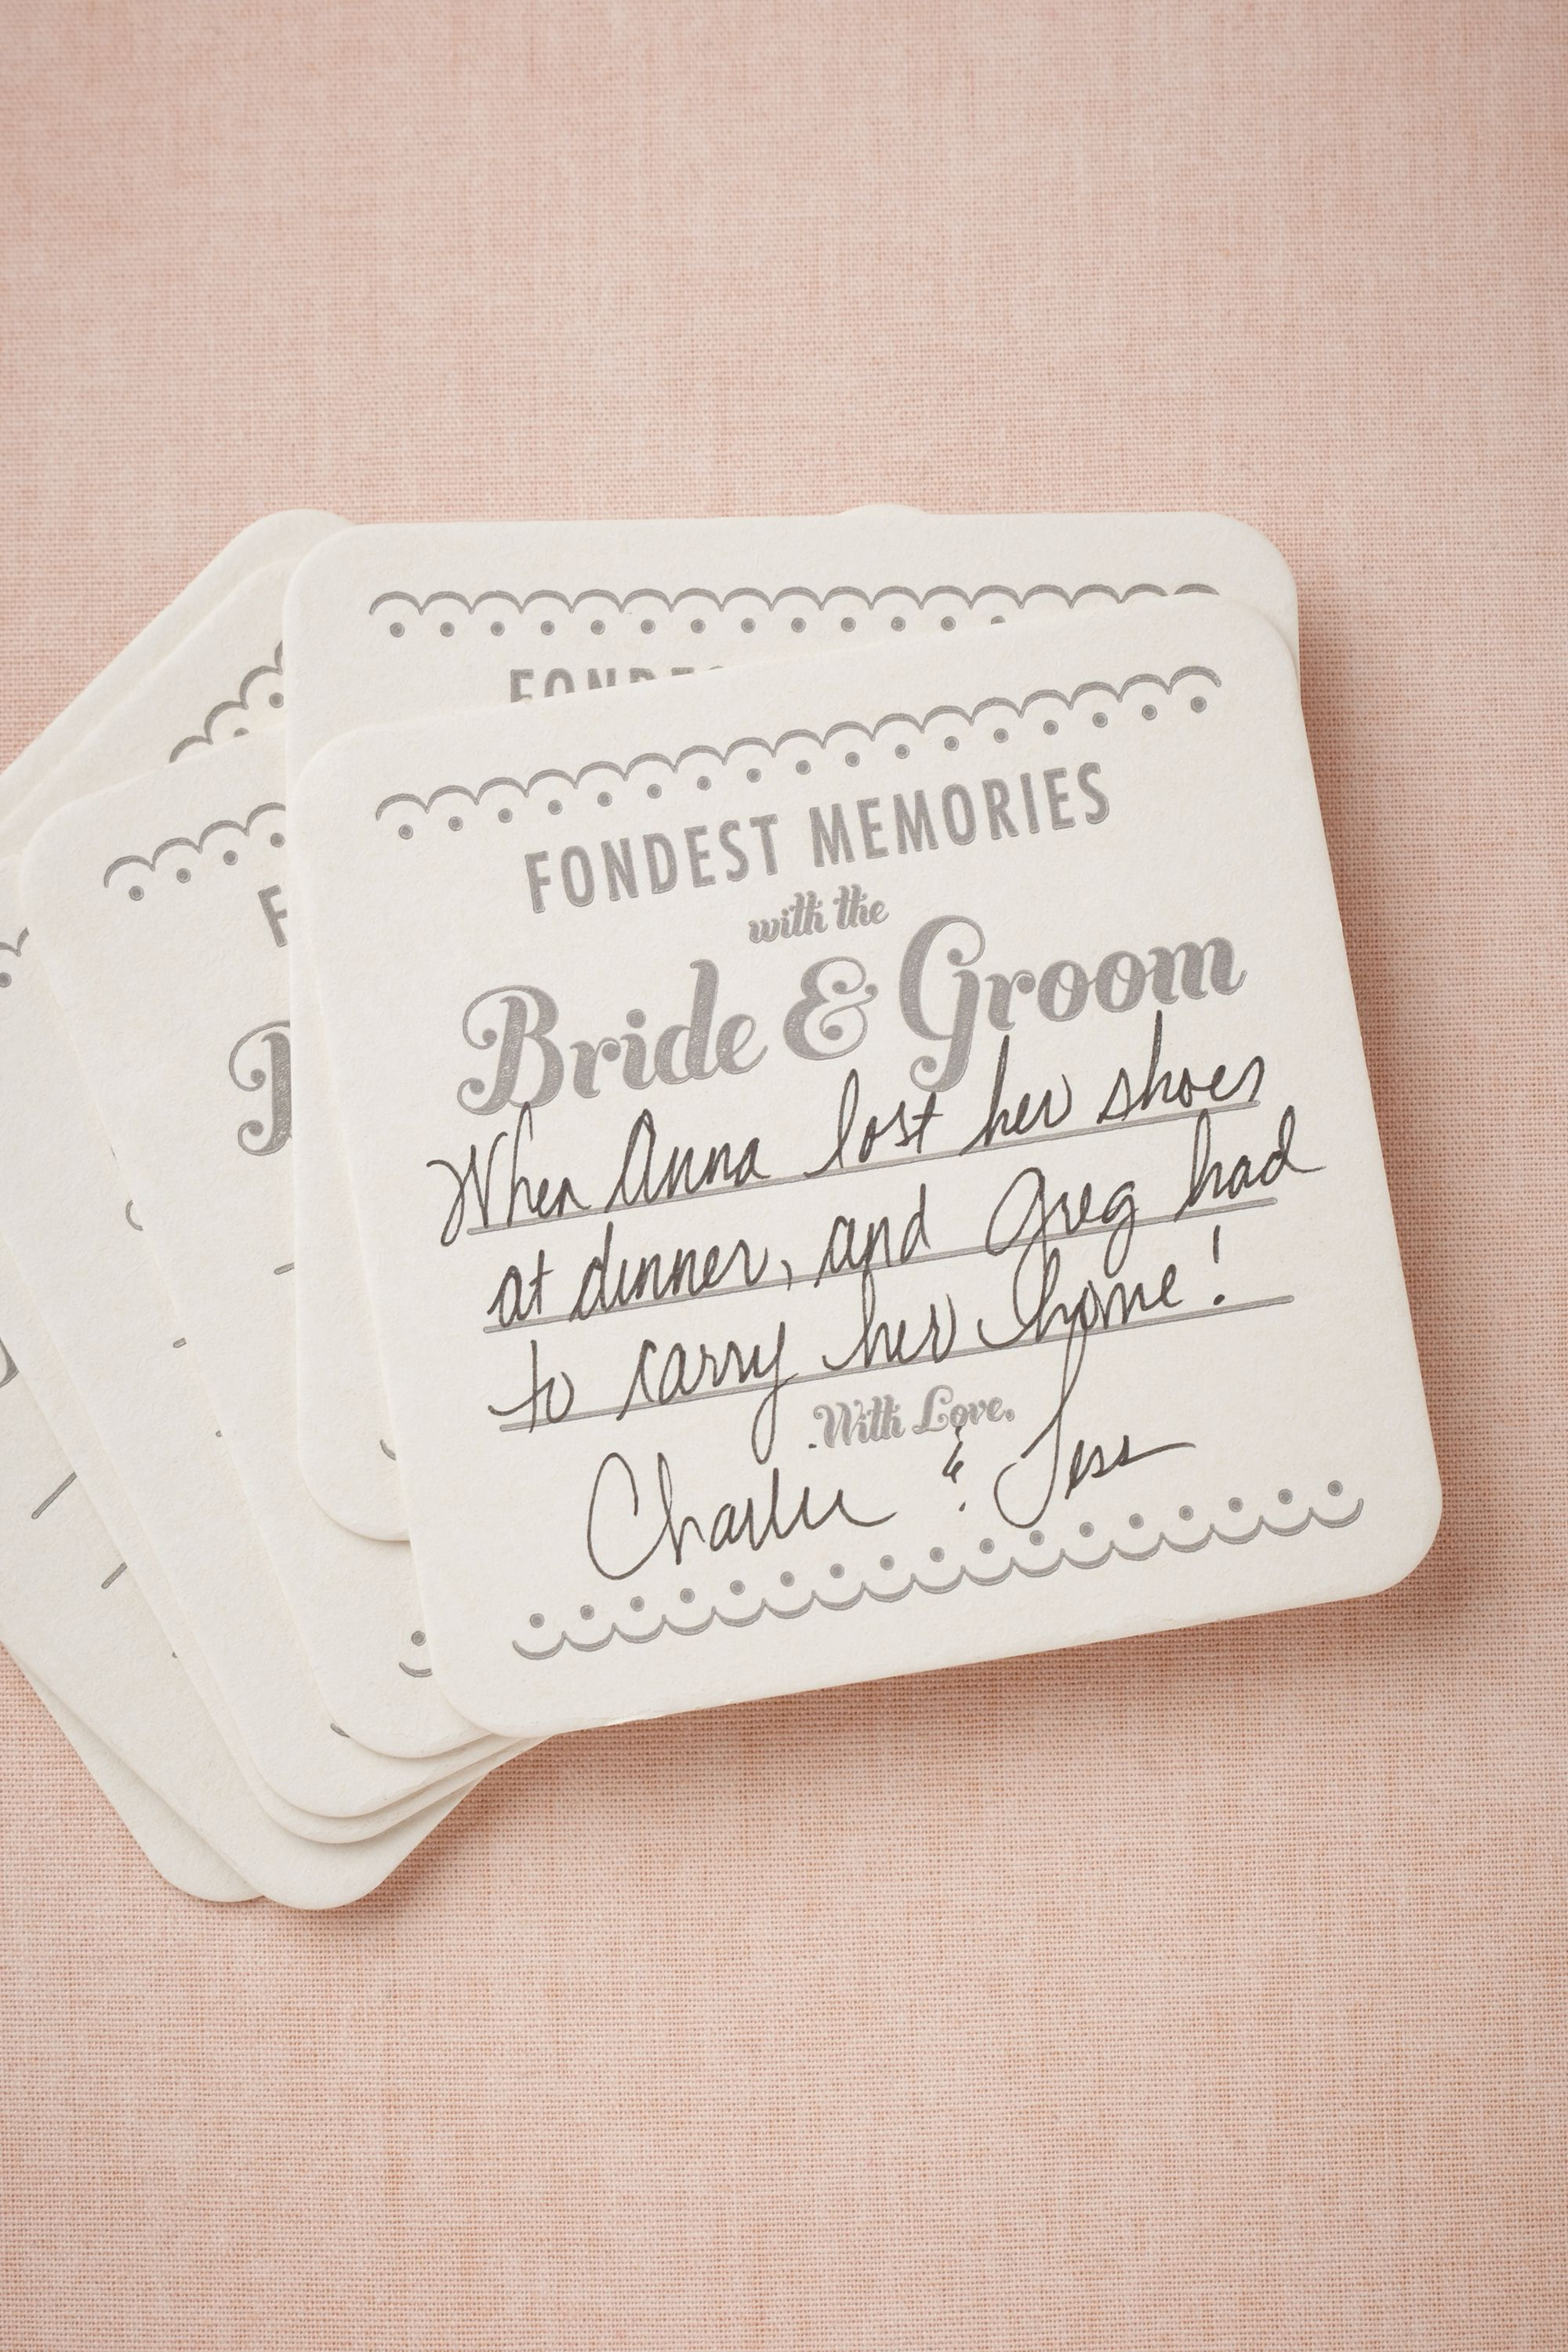 Wedding Coaster Keepsake | A Touch of Whimsy | Pinterest | Wedding ...